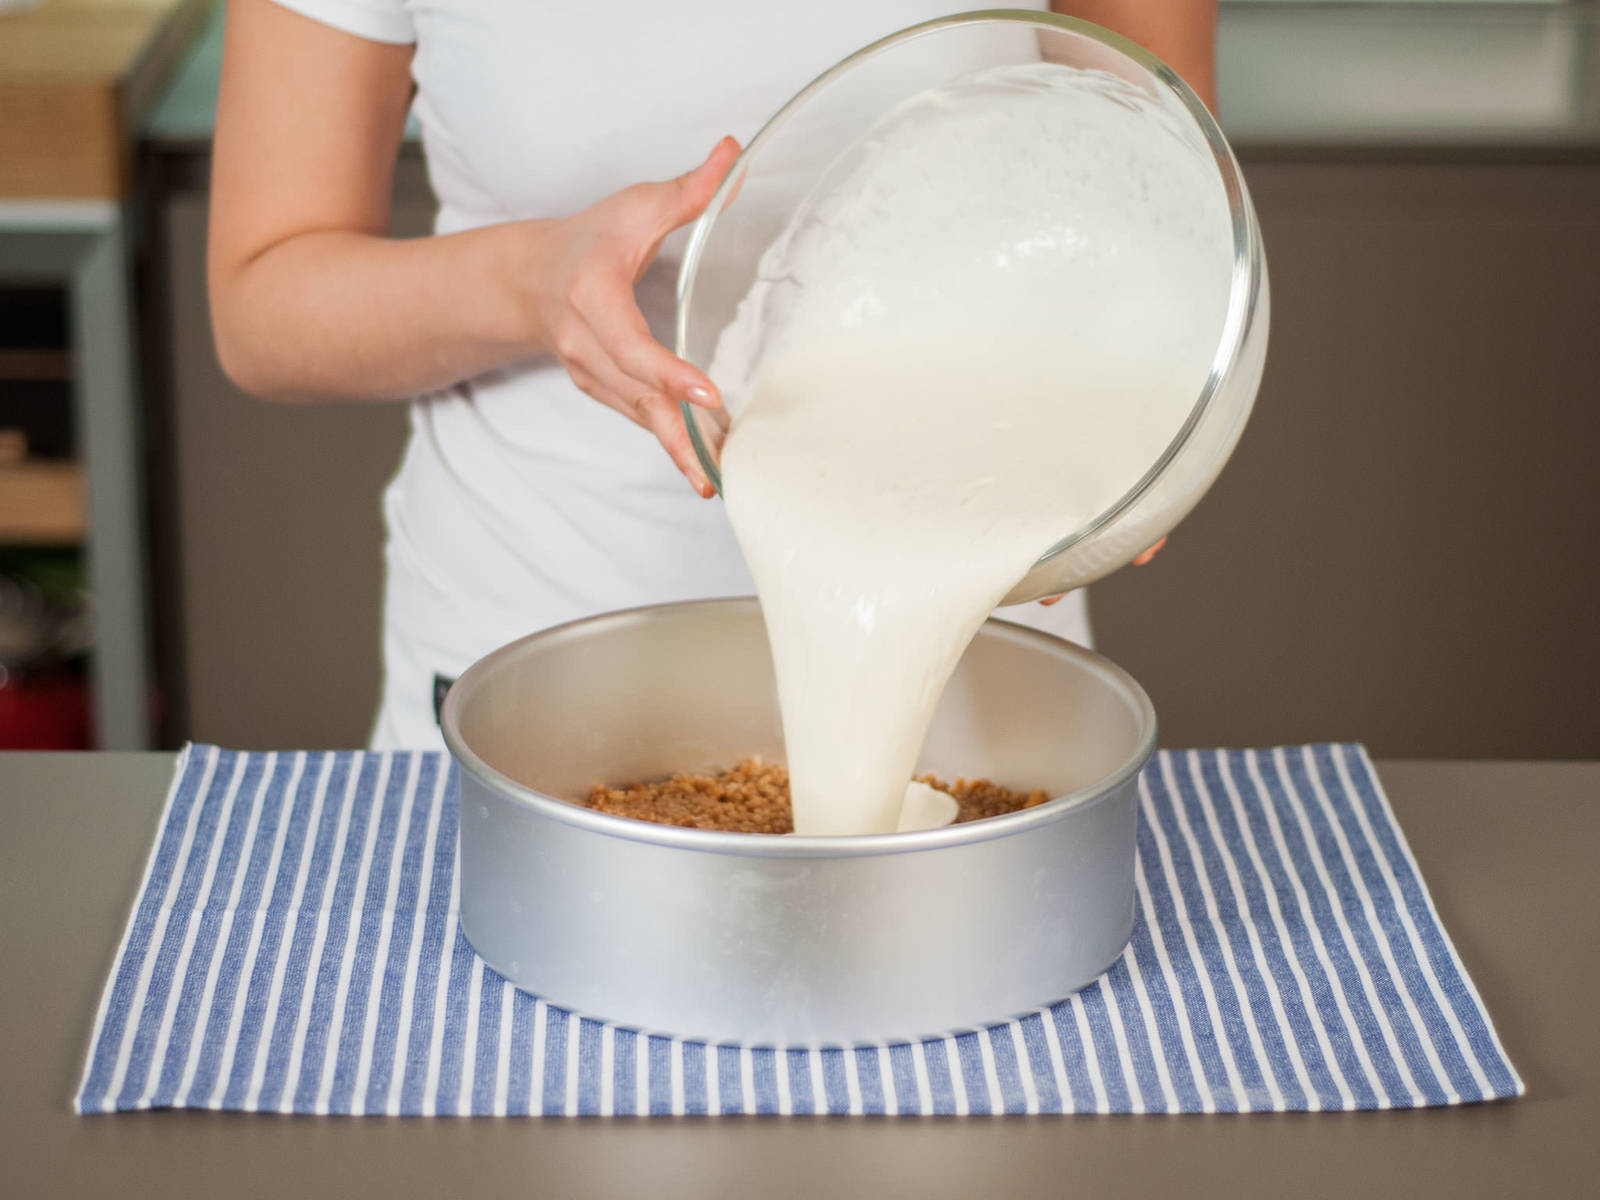 Pour batter into baking form. Gently tap form on counter to release air bubbles. Transfer to refrigerator and allow to set for approx. 3 hours.